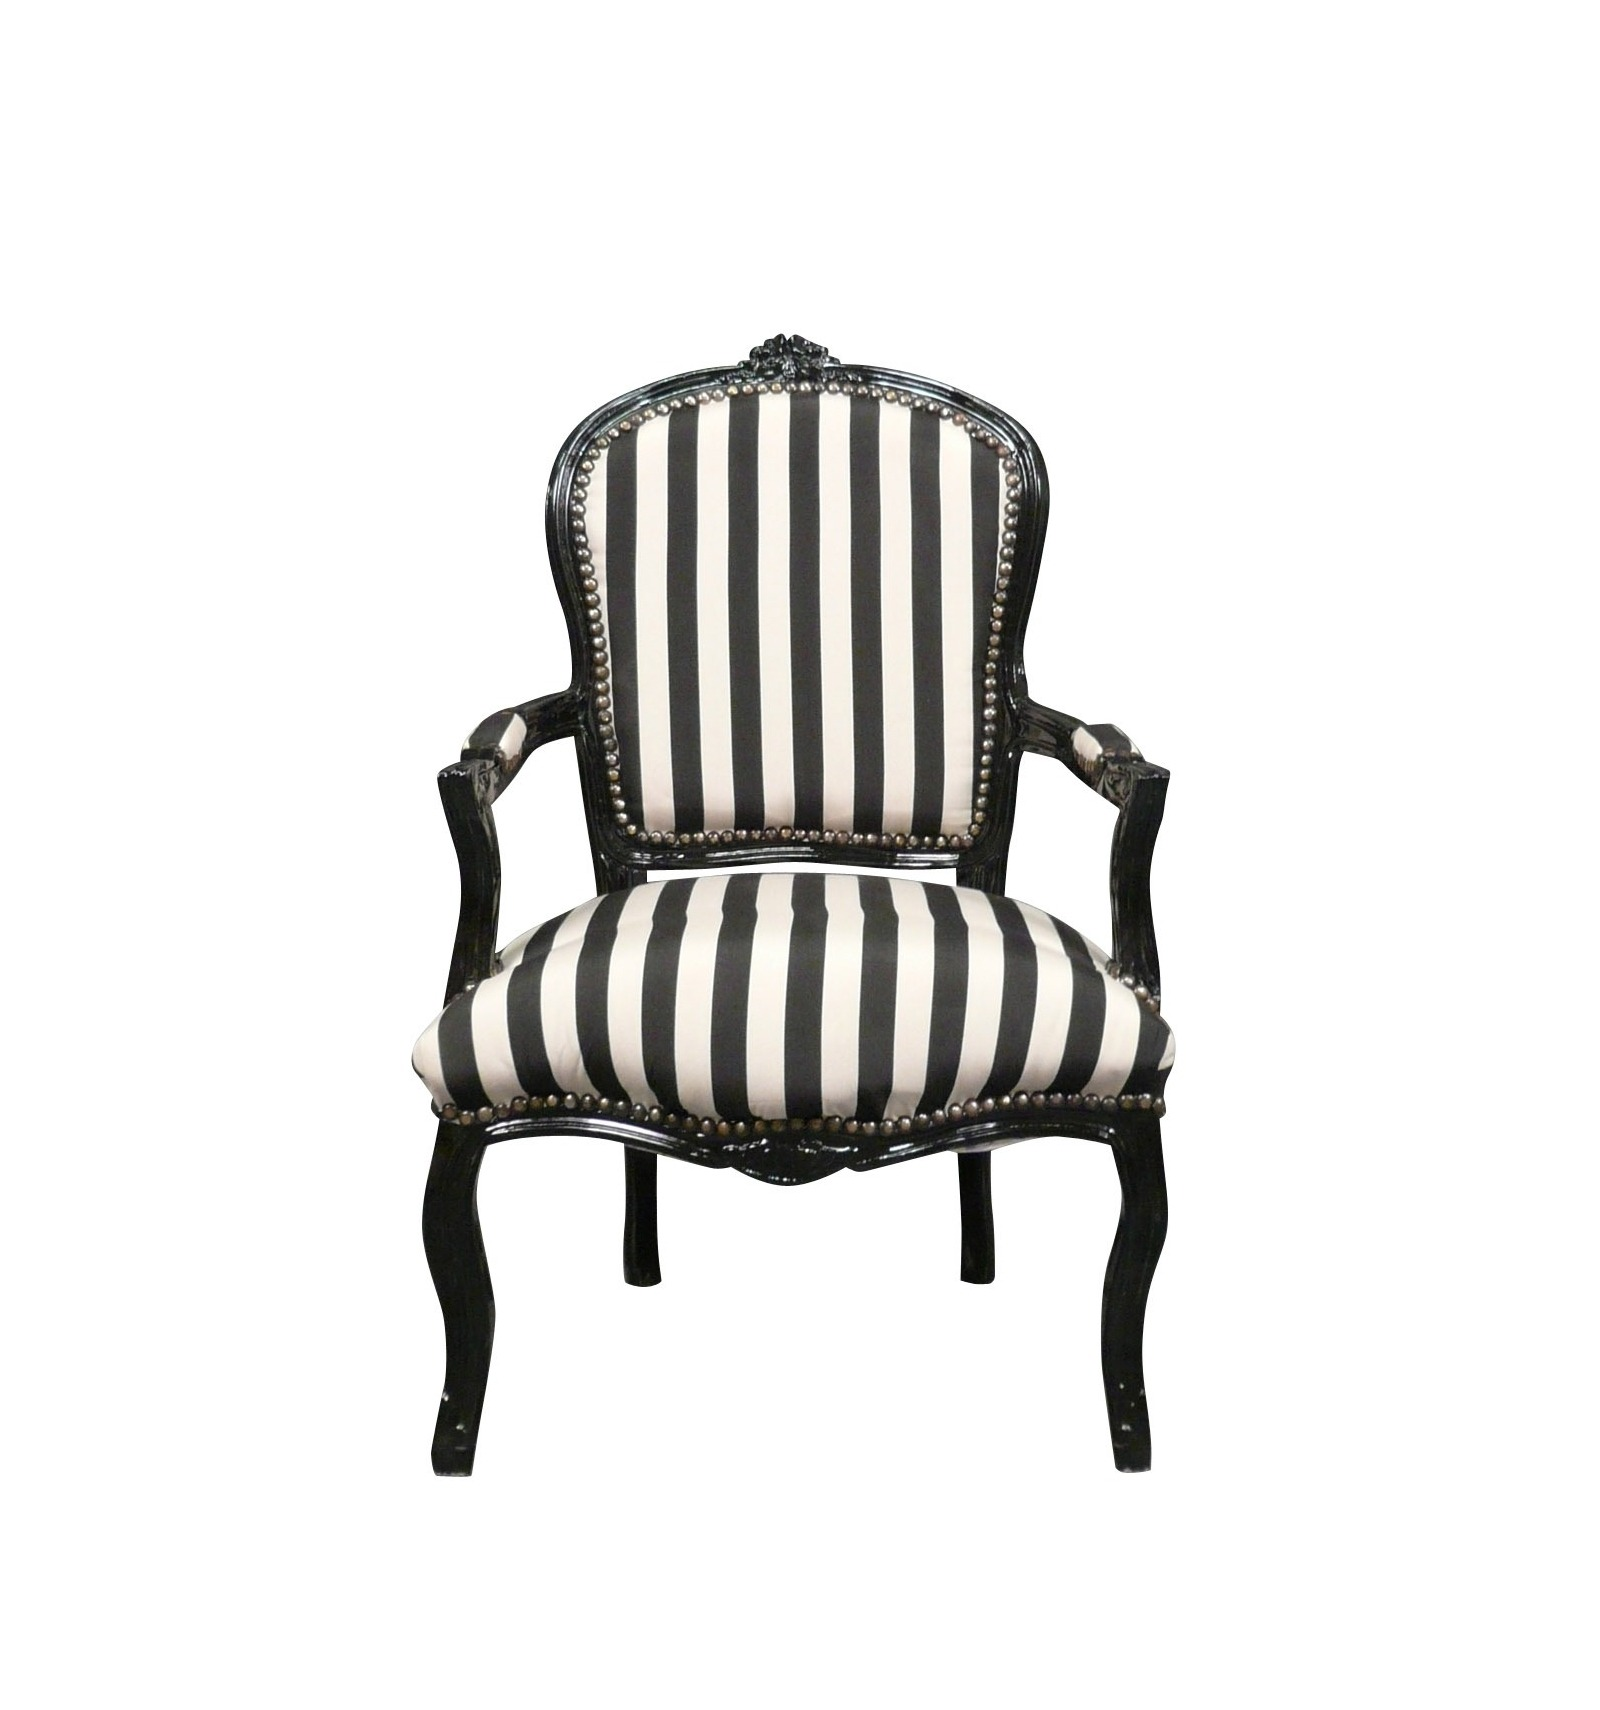 Louis xv armchair with black and white stripes for Chaise de style